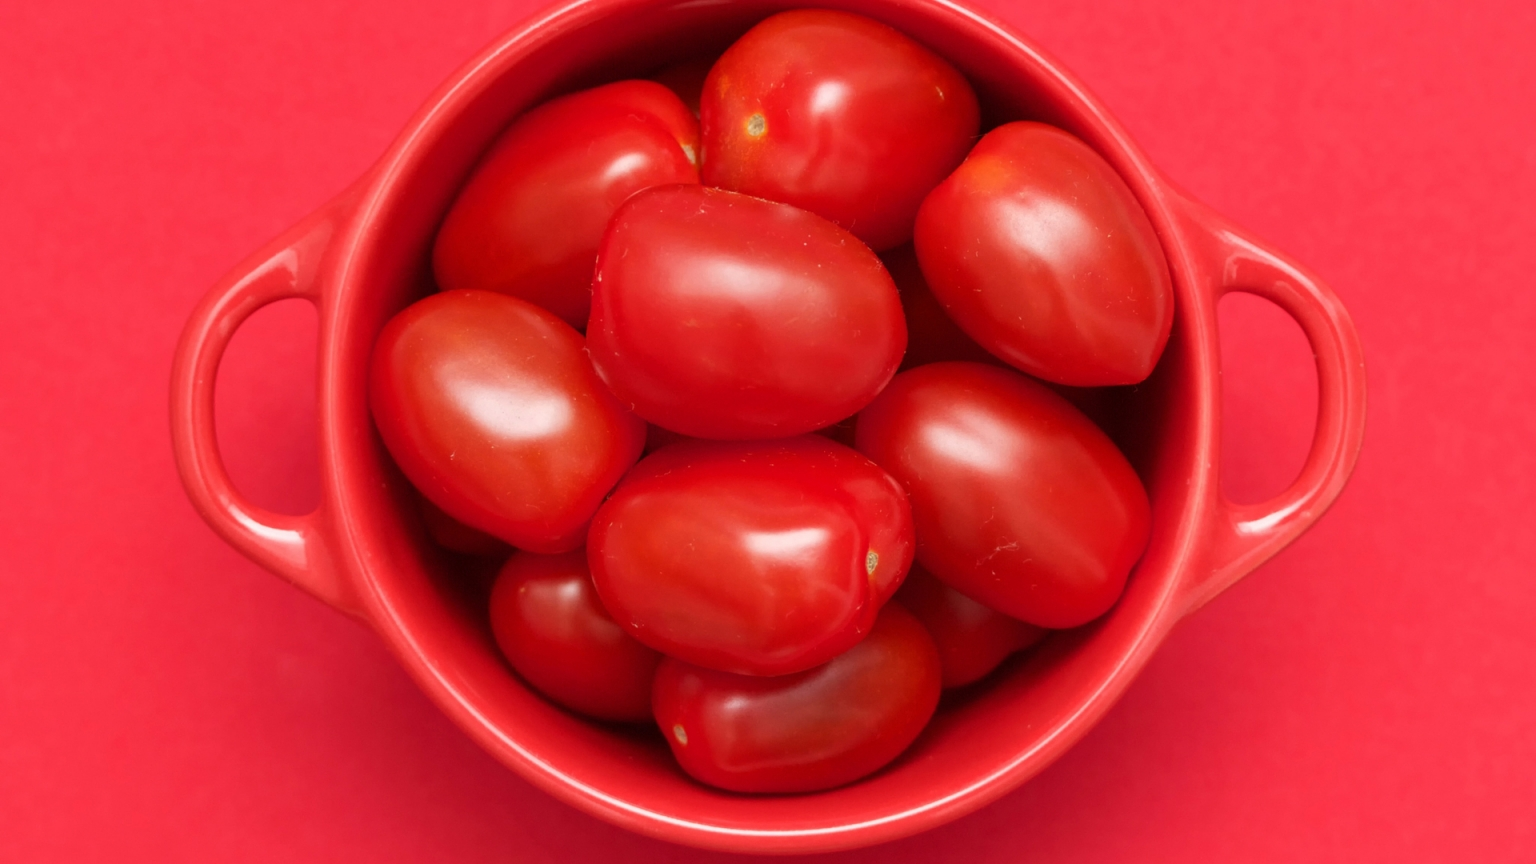 Red Tomatoes for 1536 x 864 HDTV resolution